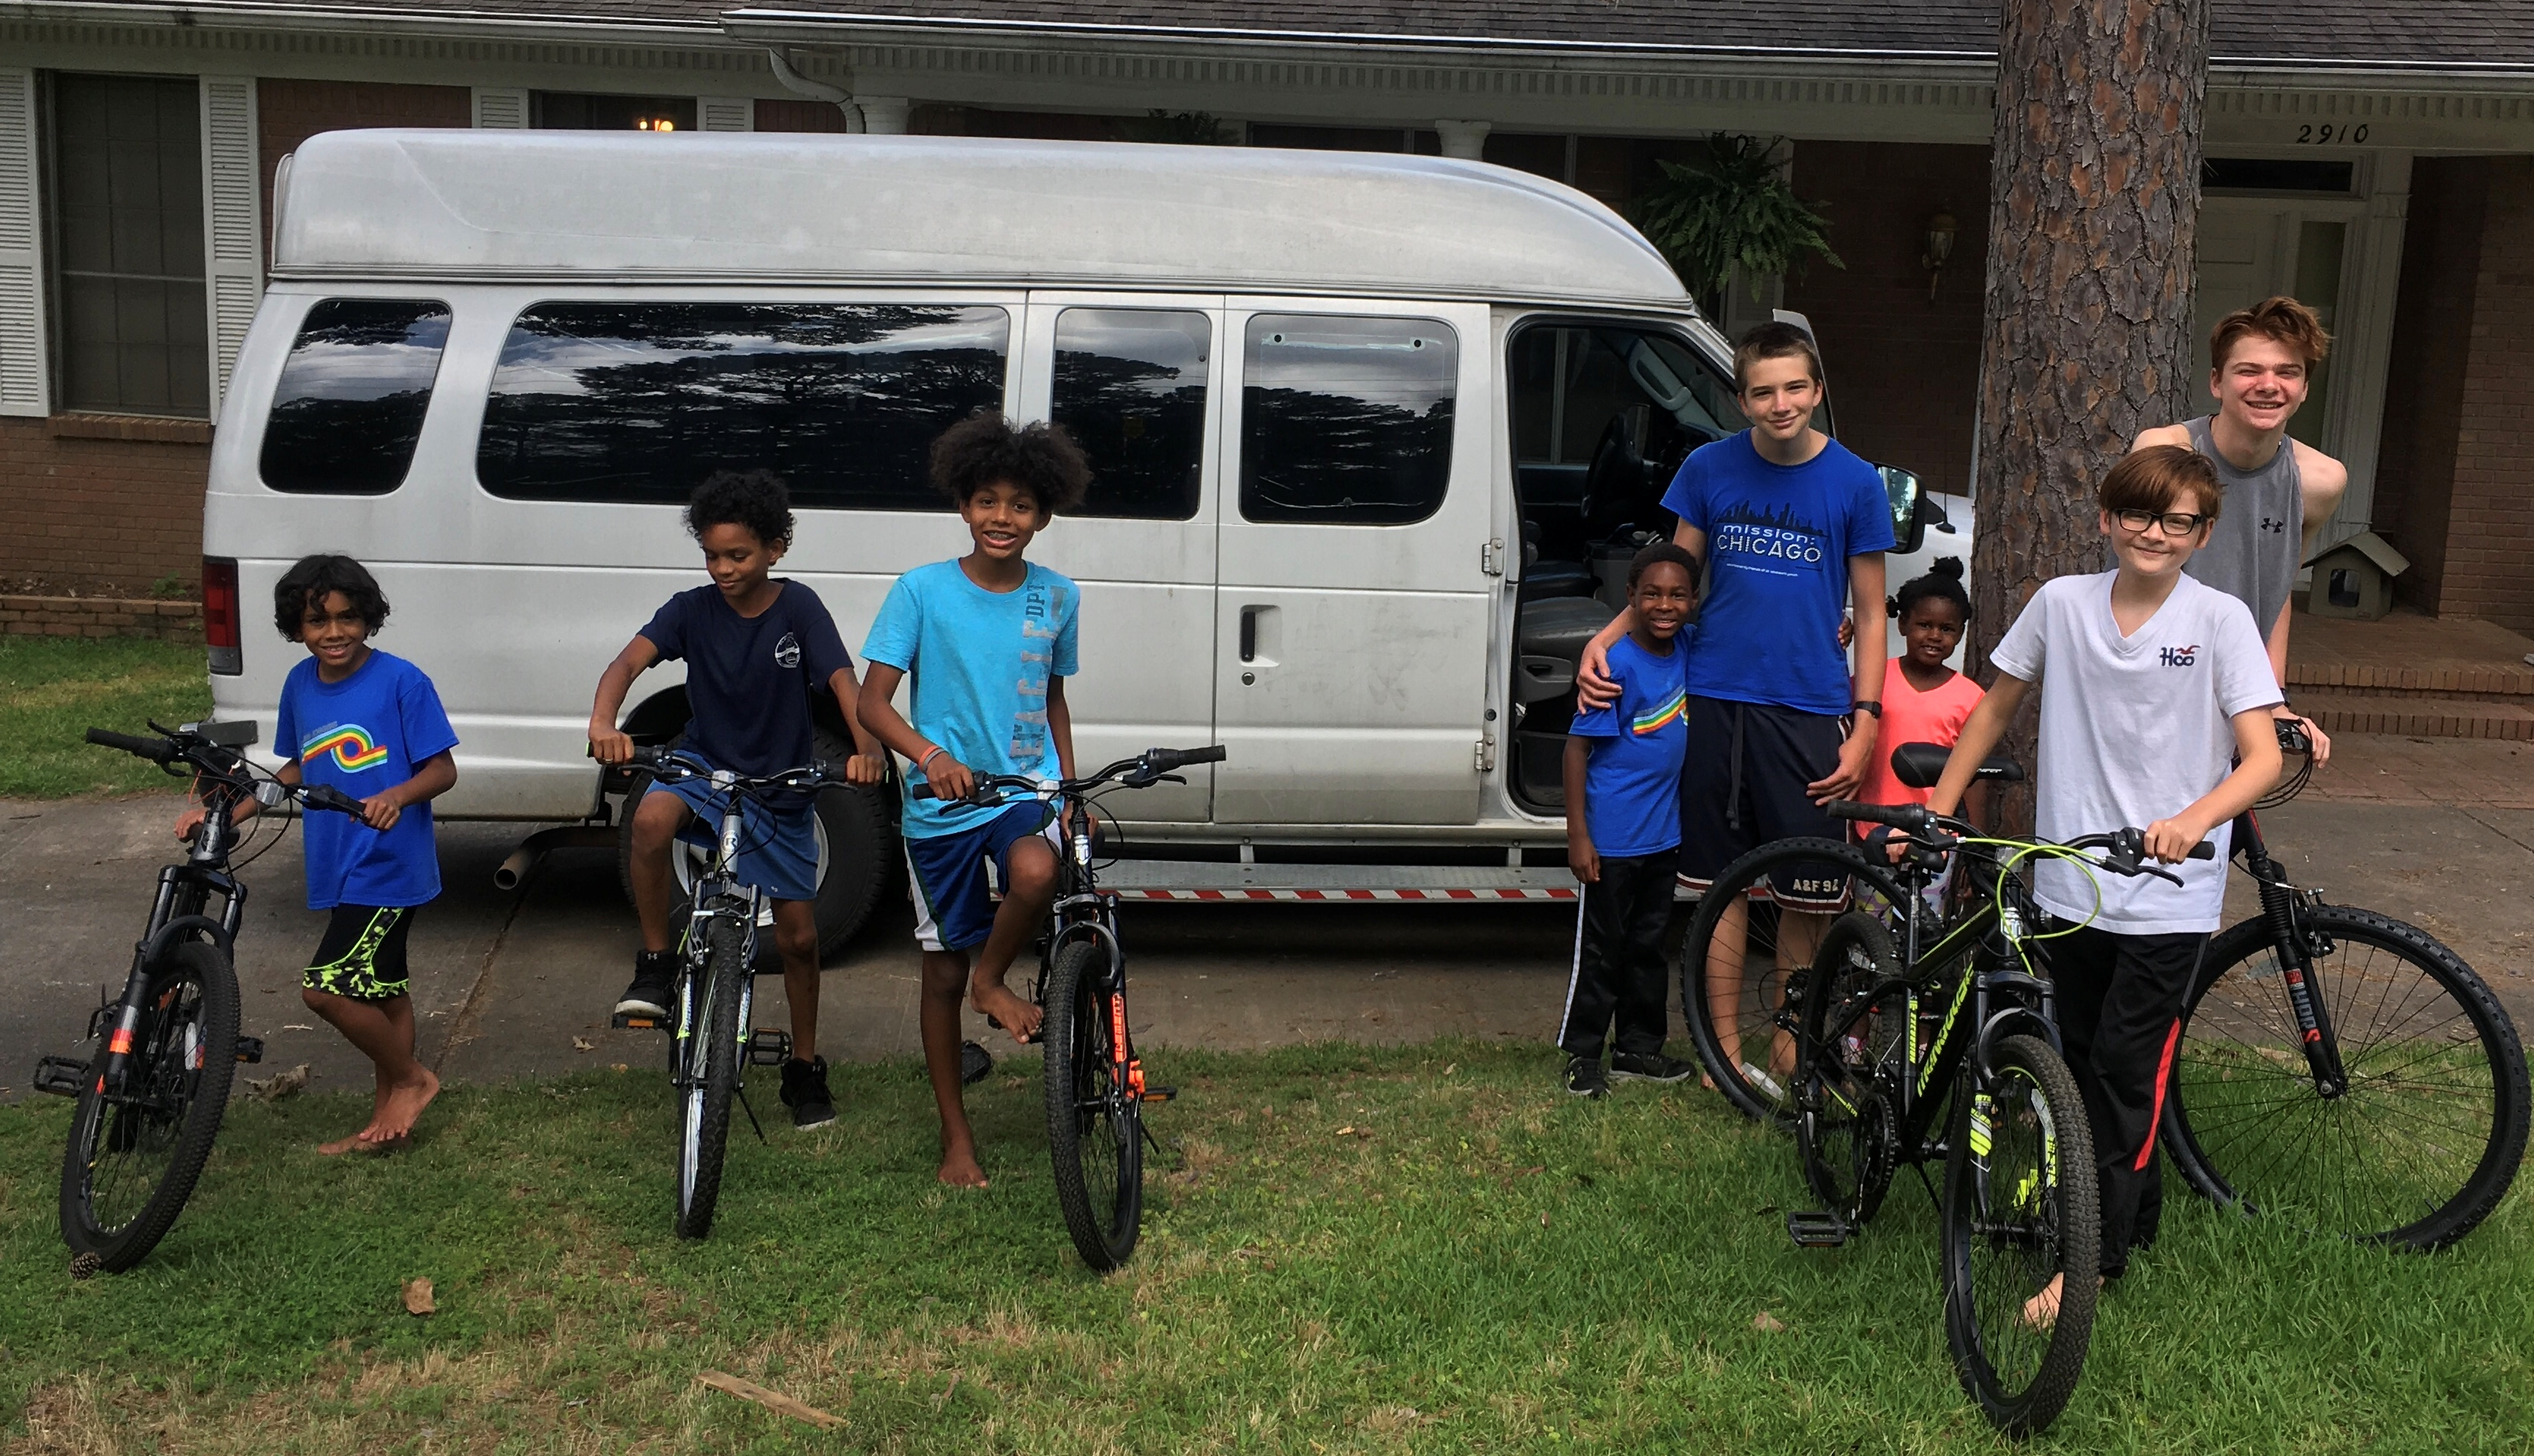 Bikes for a foster family